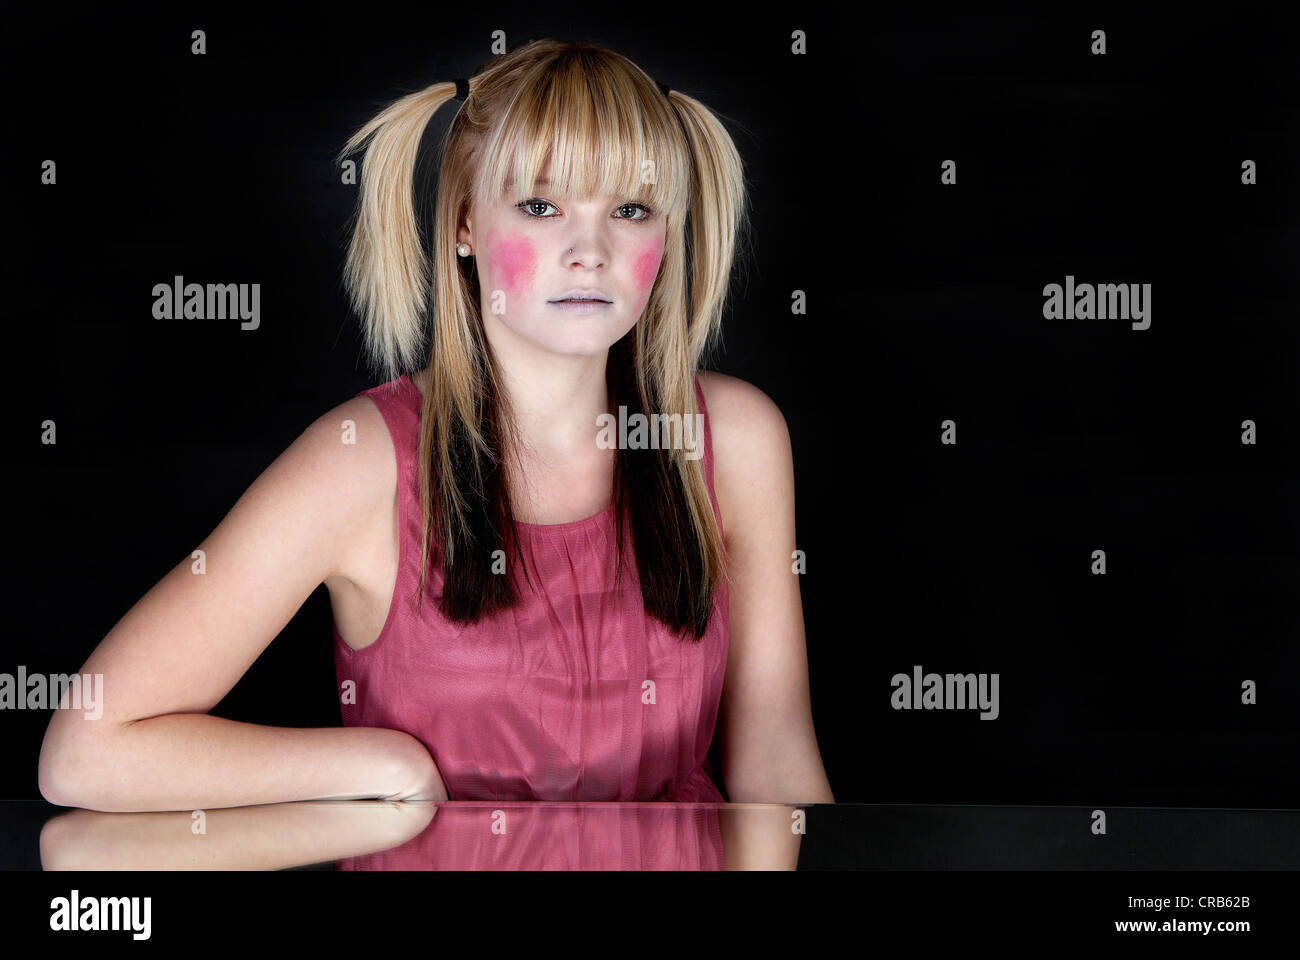 Young blond woman with red painted cheeks - Stock Image